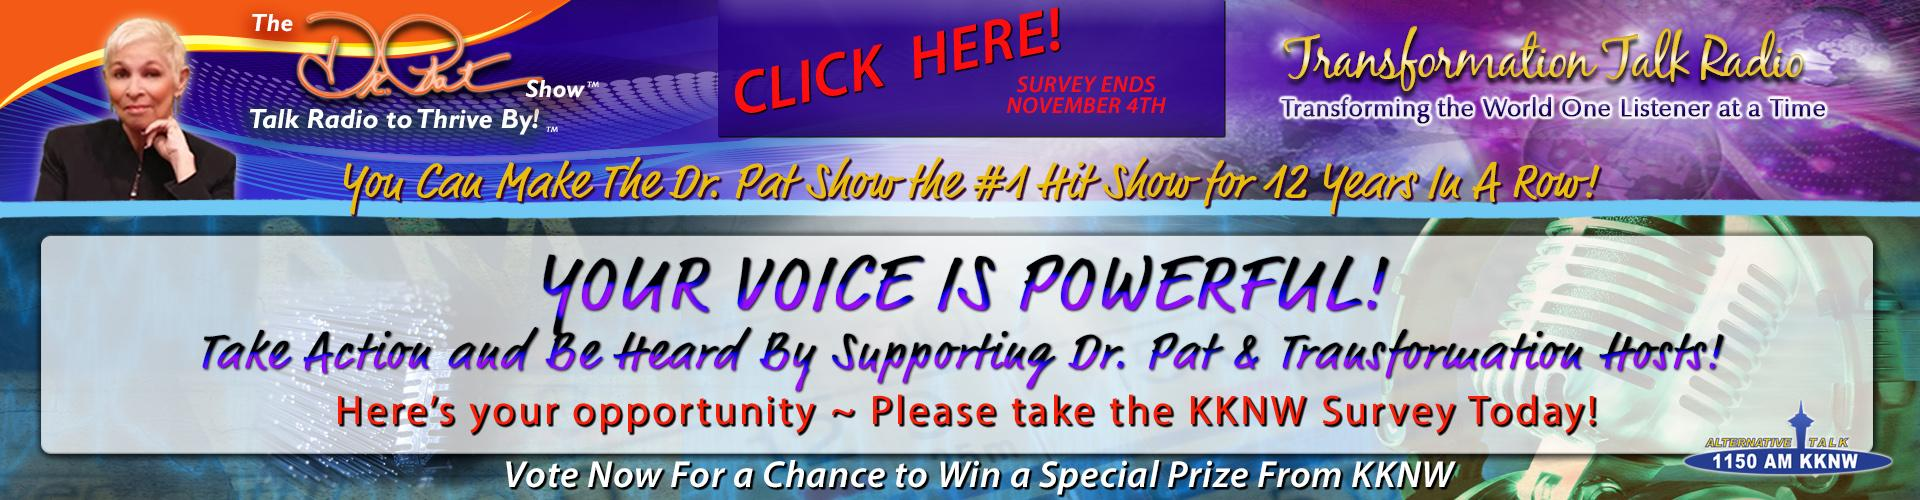 Vote Now and Make Dr. Pat #1 Again for 12 Yrs Running! 2018 KKNW Listener Survey - Deadline Nov. 4th! Please Vote Now